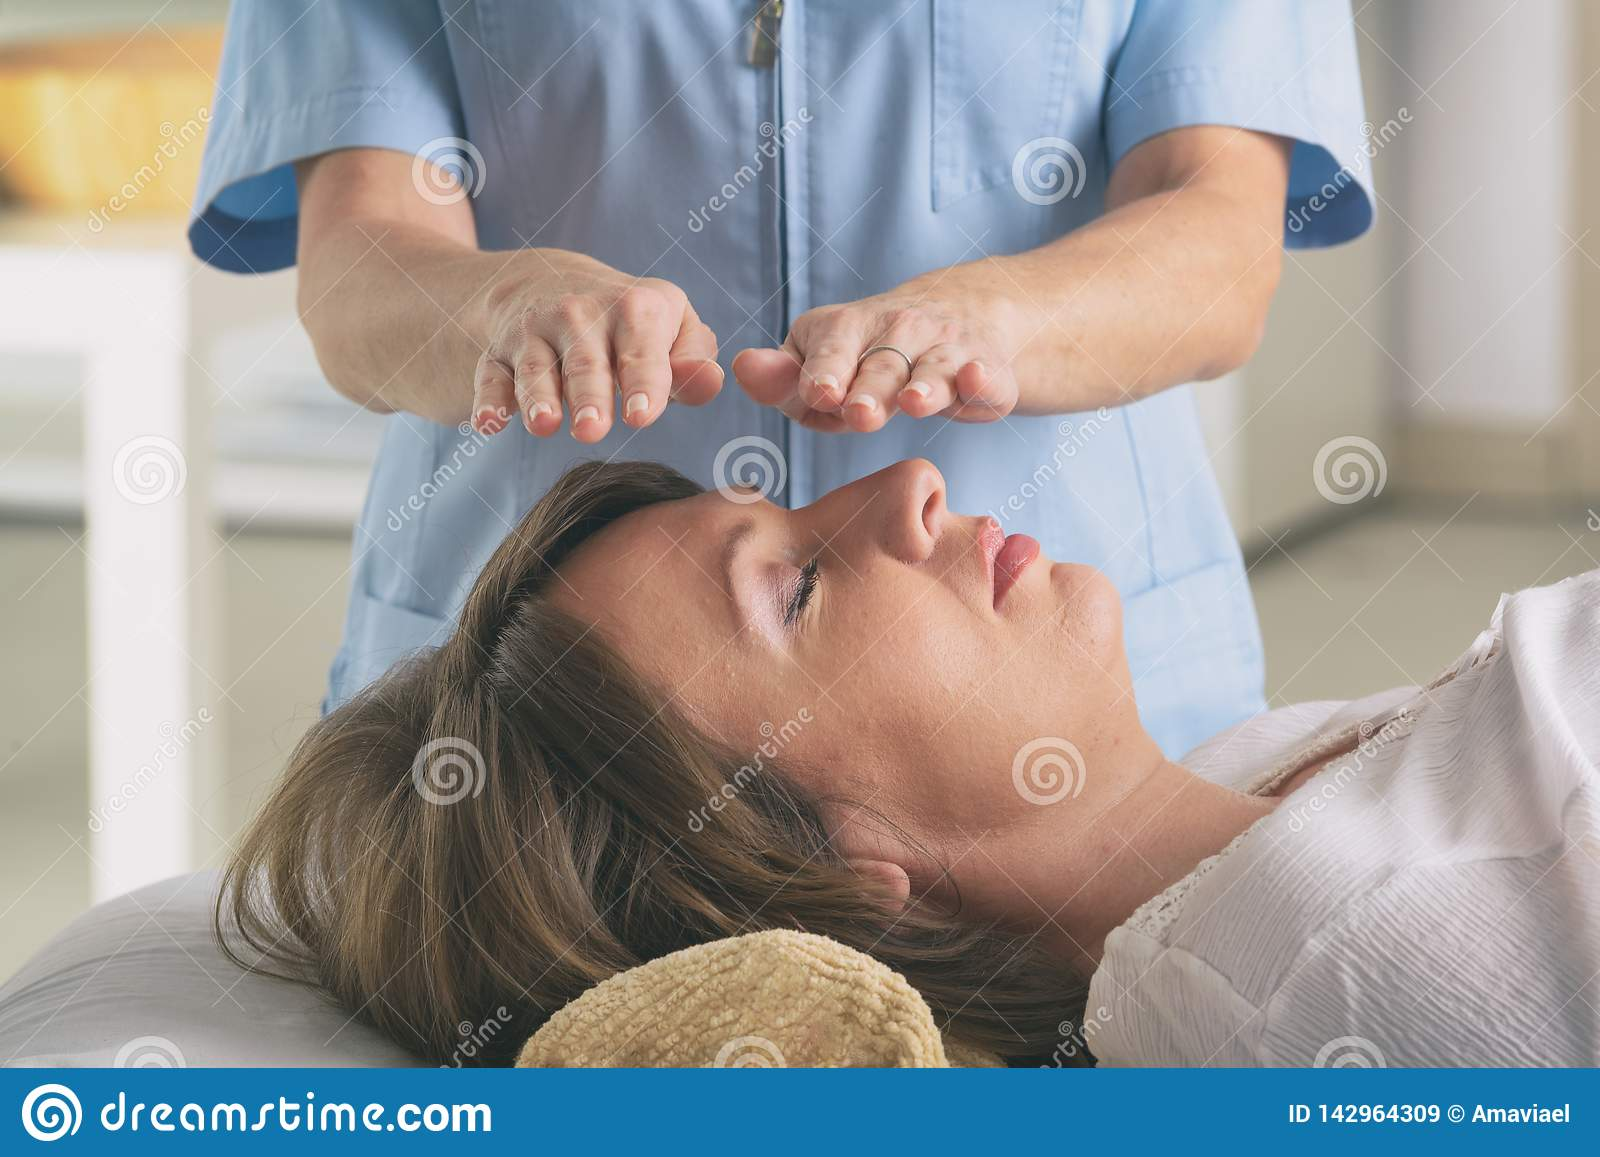 Professional Reiki Healer Doing Reiki Stock Image - Image of